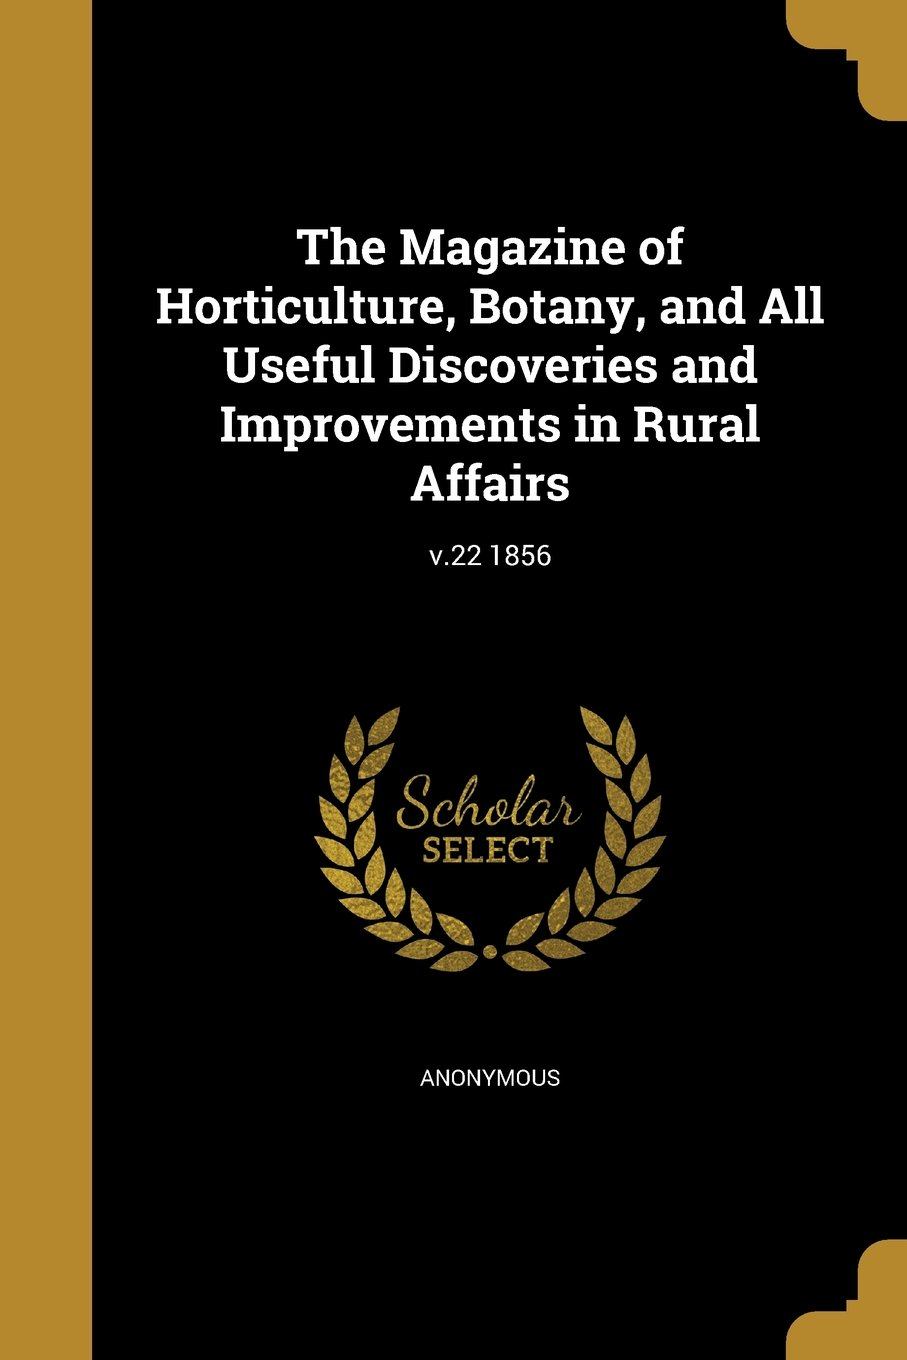 Download The Magazine of Horticulture, Botany, and All Useful Discoveries and Improvements in Rural Affairs; V.22 1856 PDF